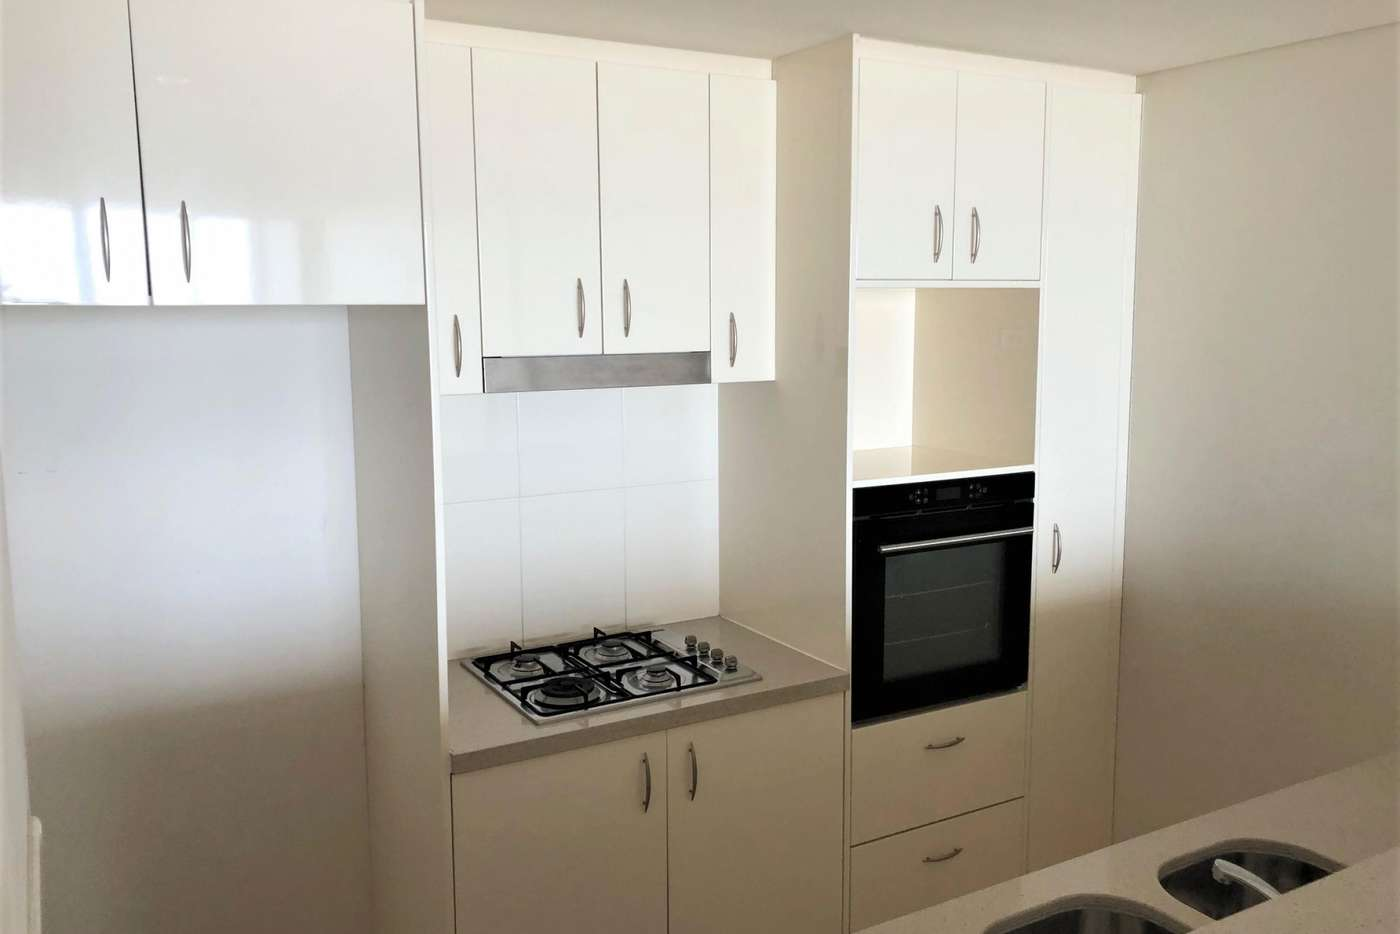 Seventh view of Homely unit listing, Unit 1410/1 Como Crescent, Southport QLD 4215